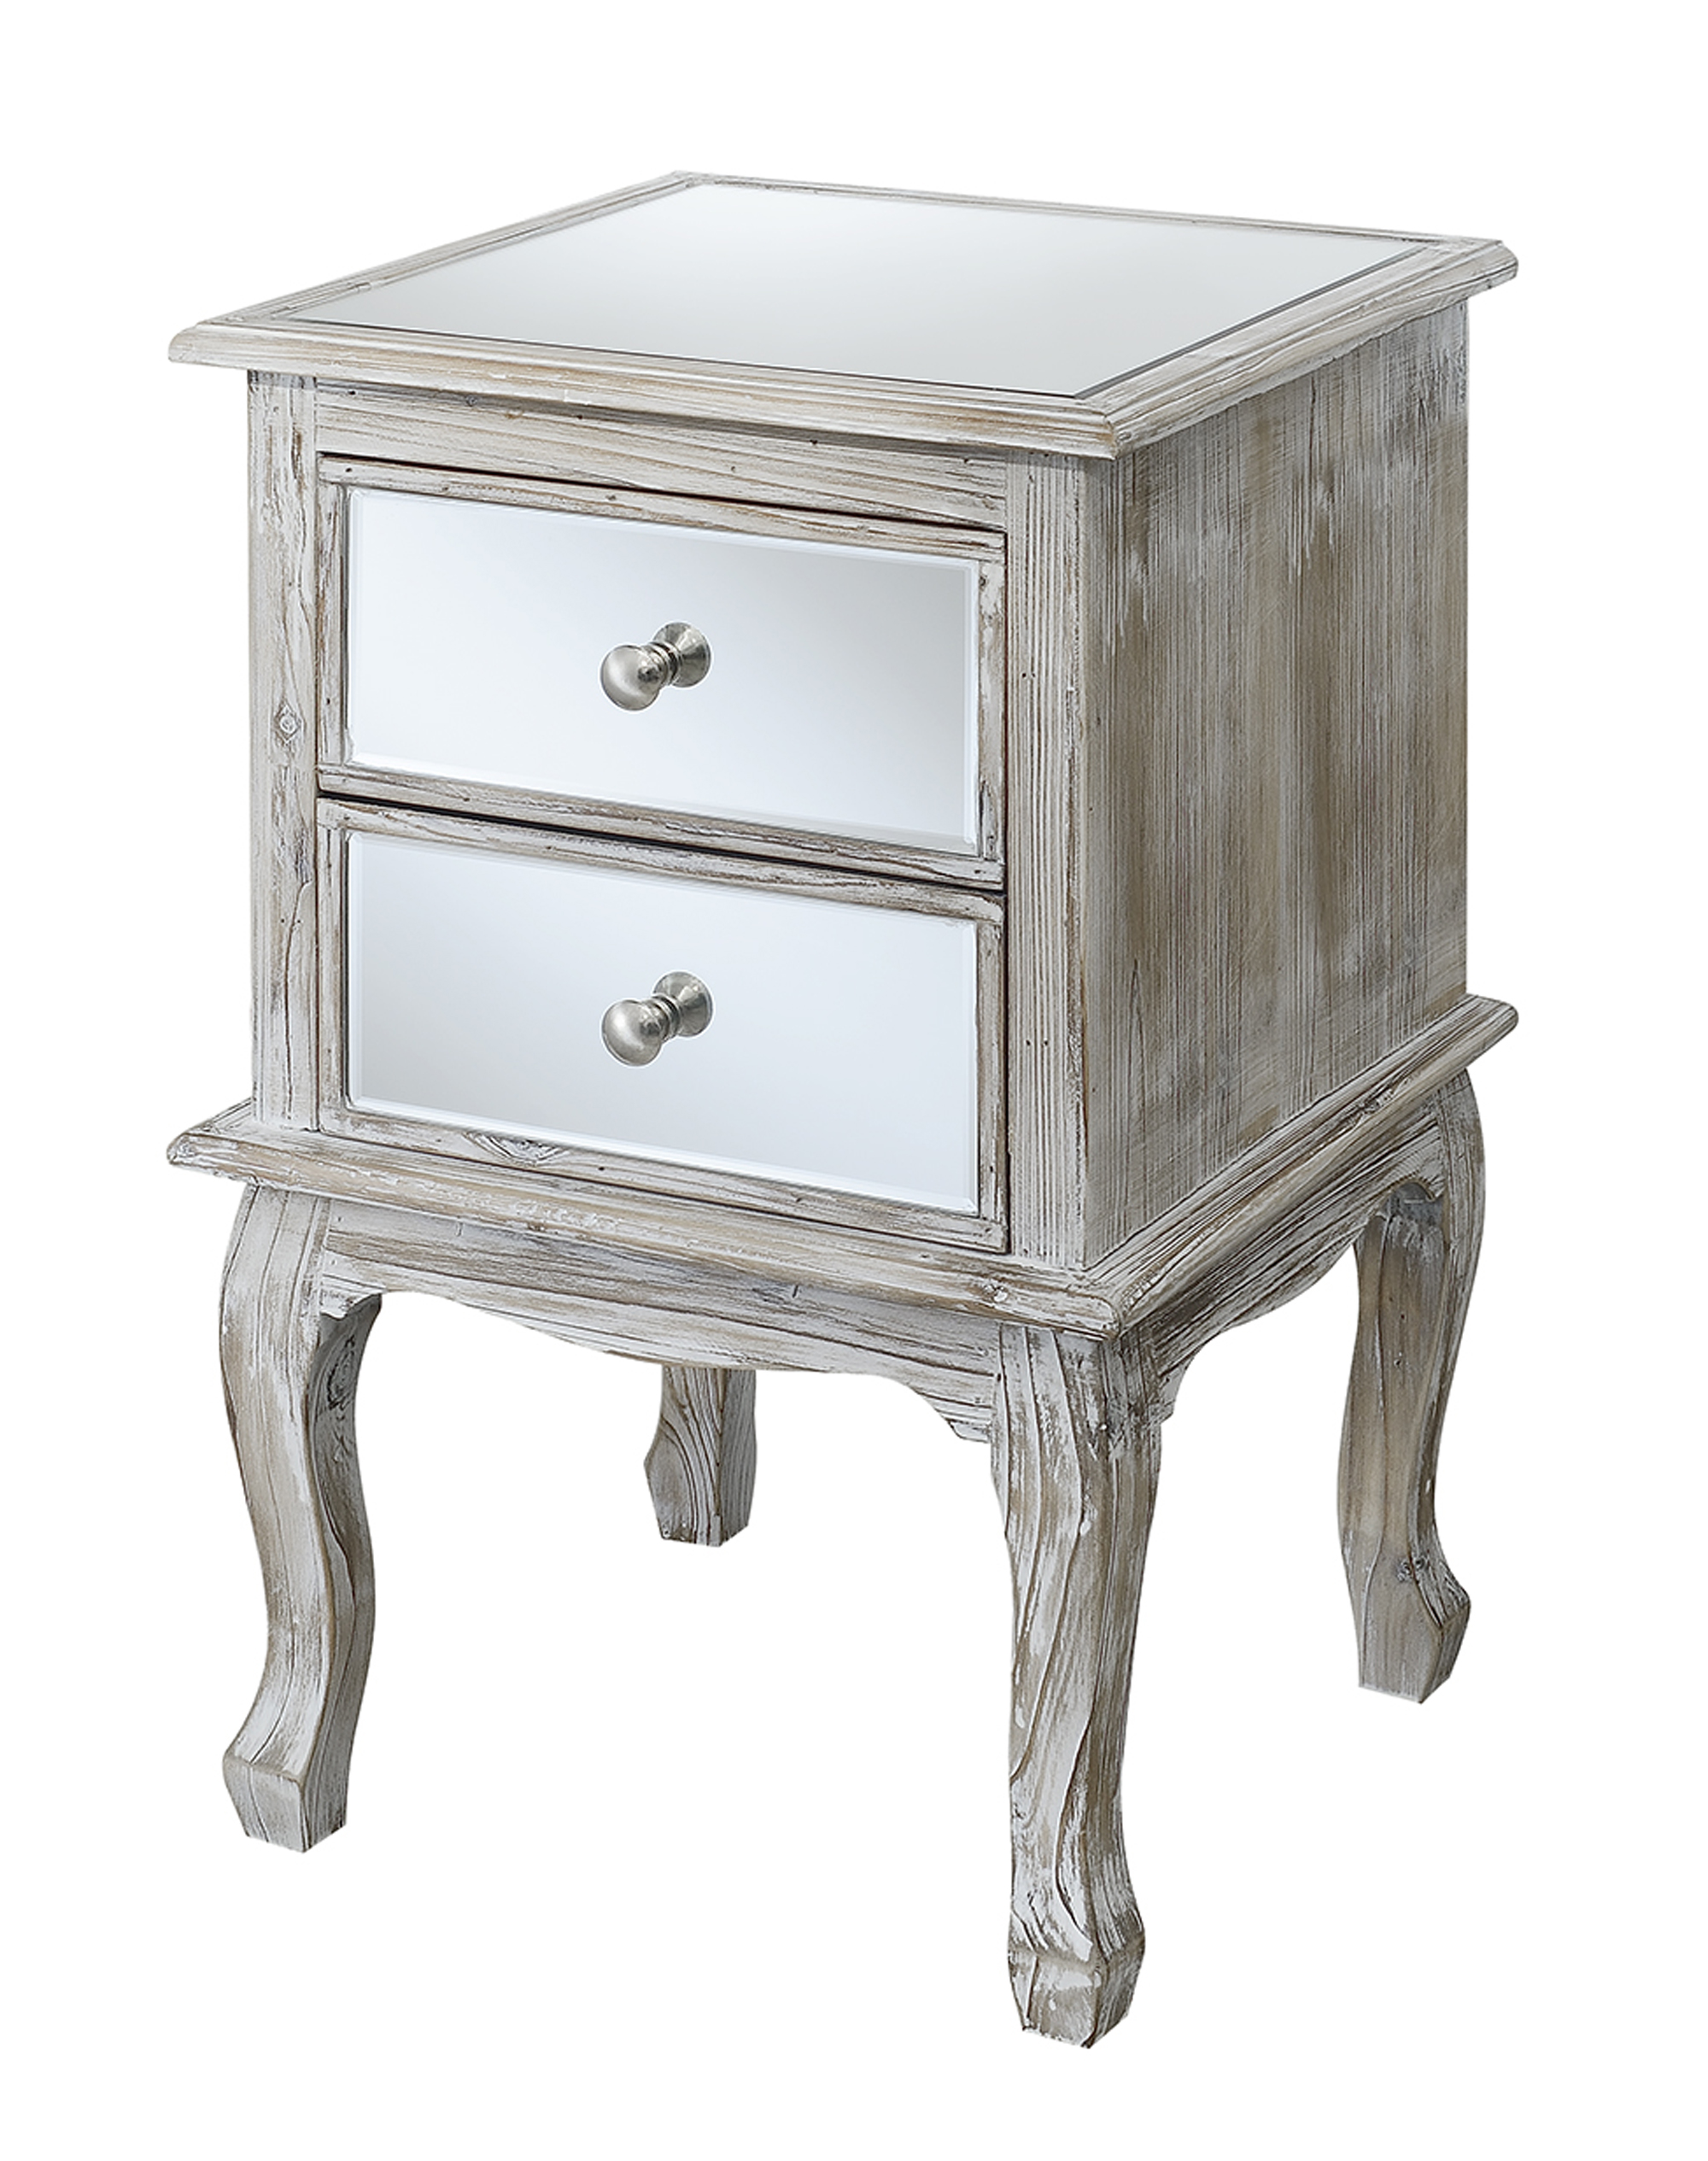 Convenience Concepts 413553WW 25 lbs Gold Coast Queen Size Anne Mirrored End Table